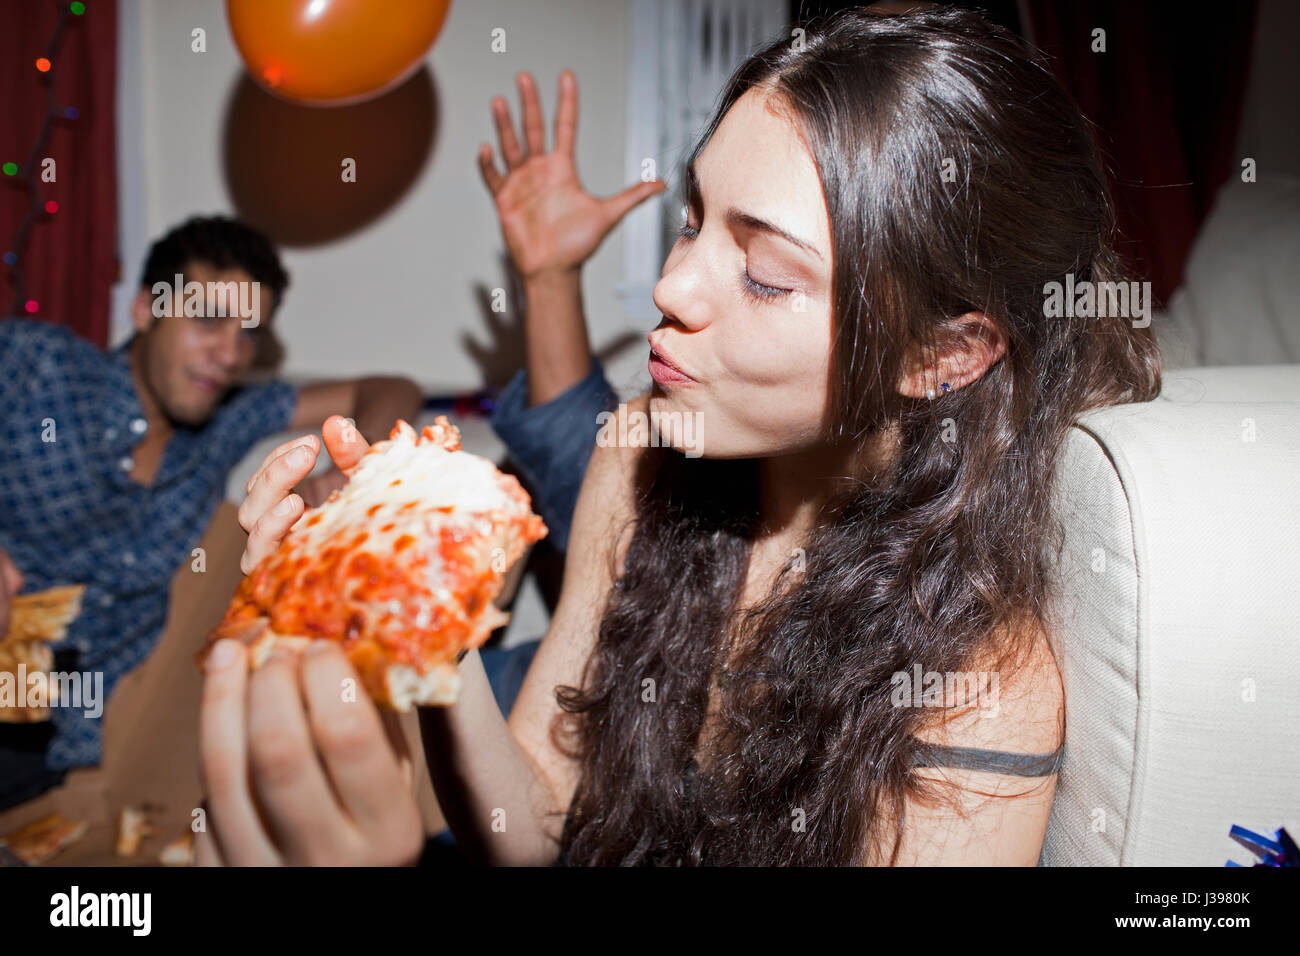 Young woman eating pizza Banque D'Images